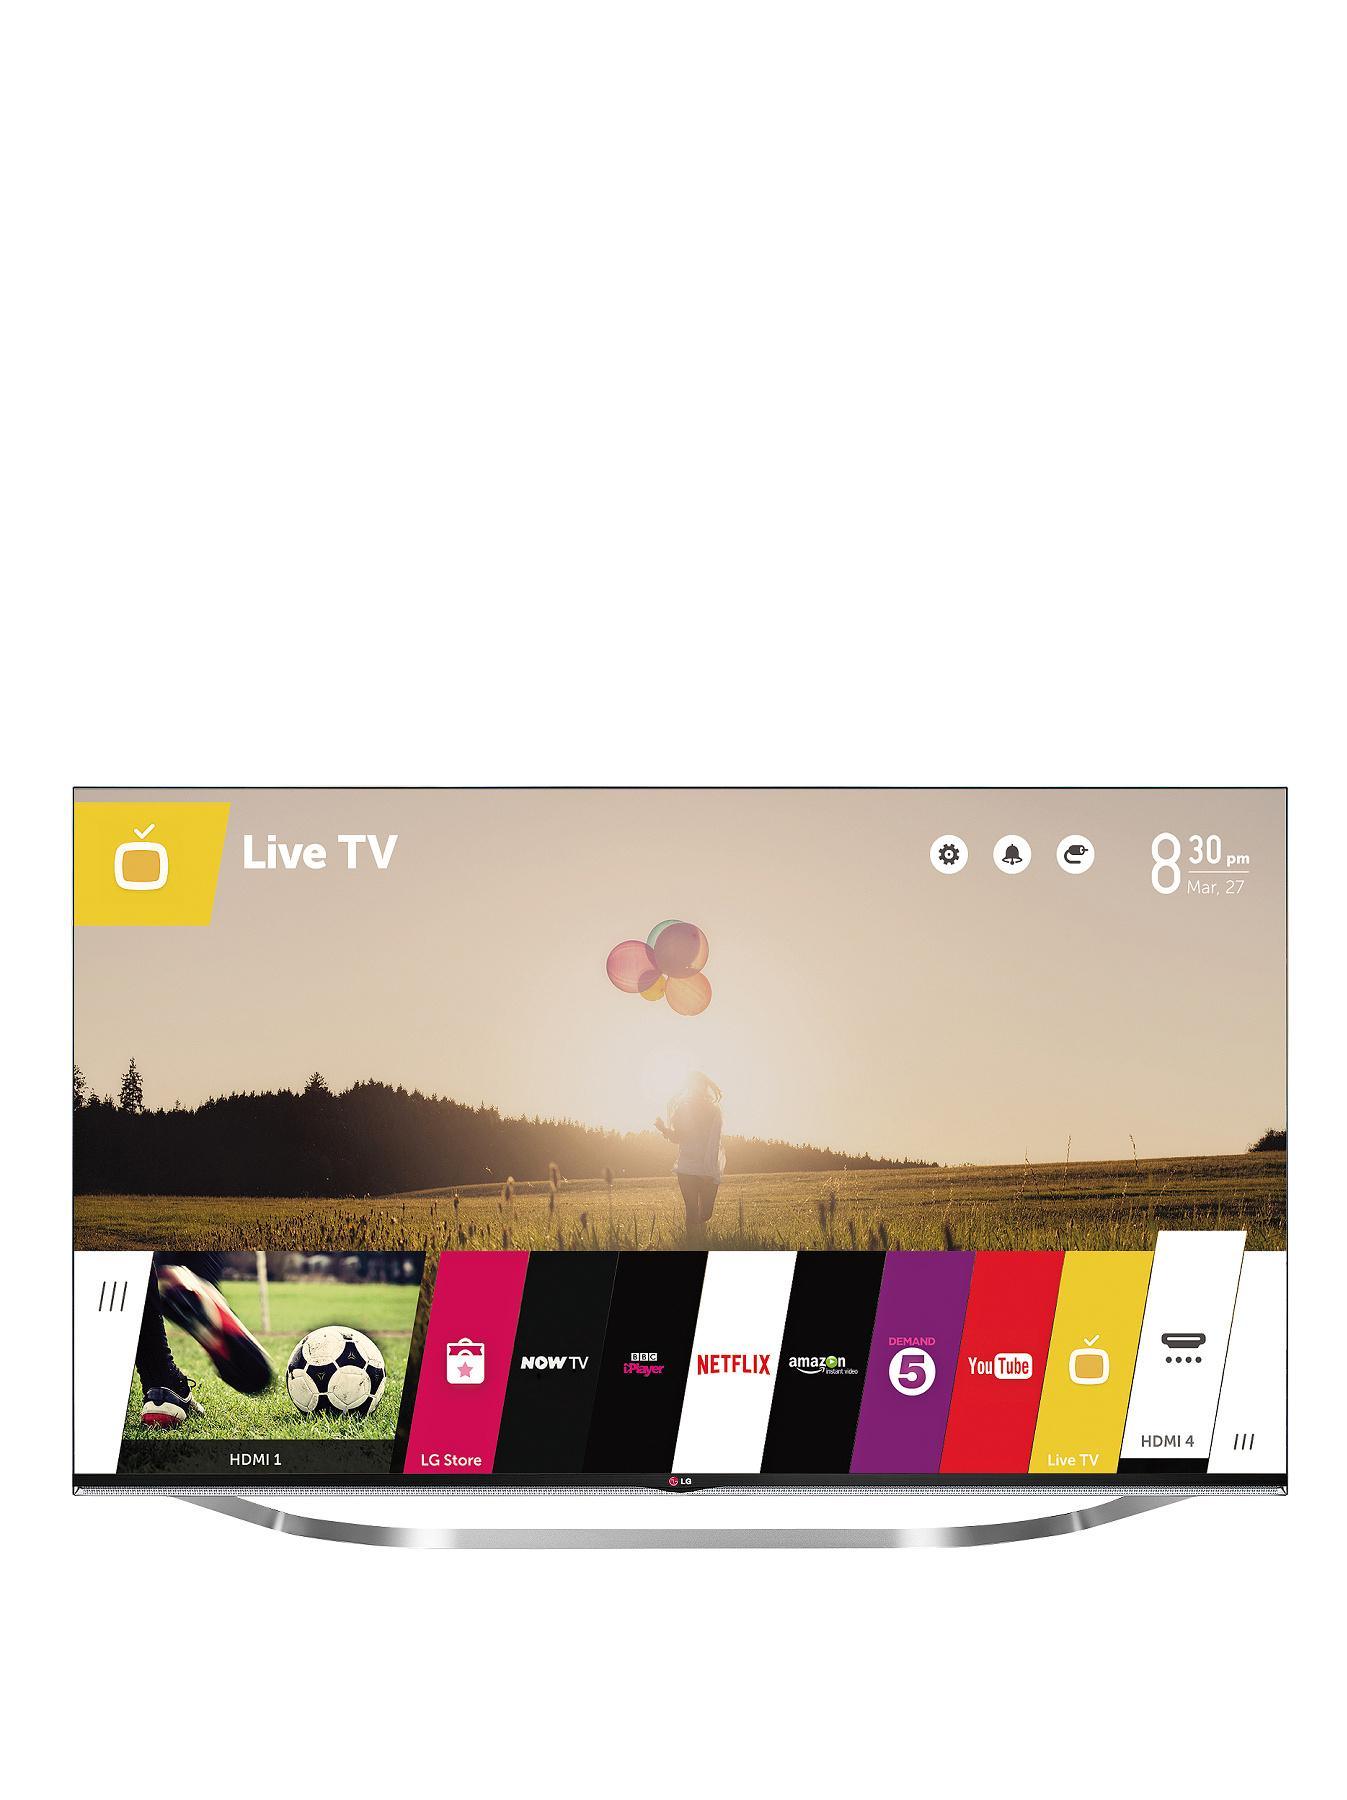 LG 47LB730V 47 inch Passive 3D Smart Full HD, Freeview HD LED TV